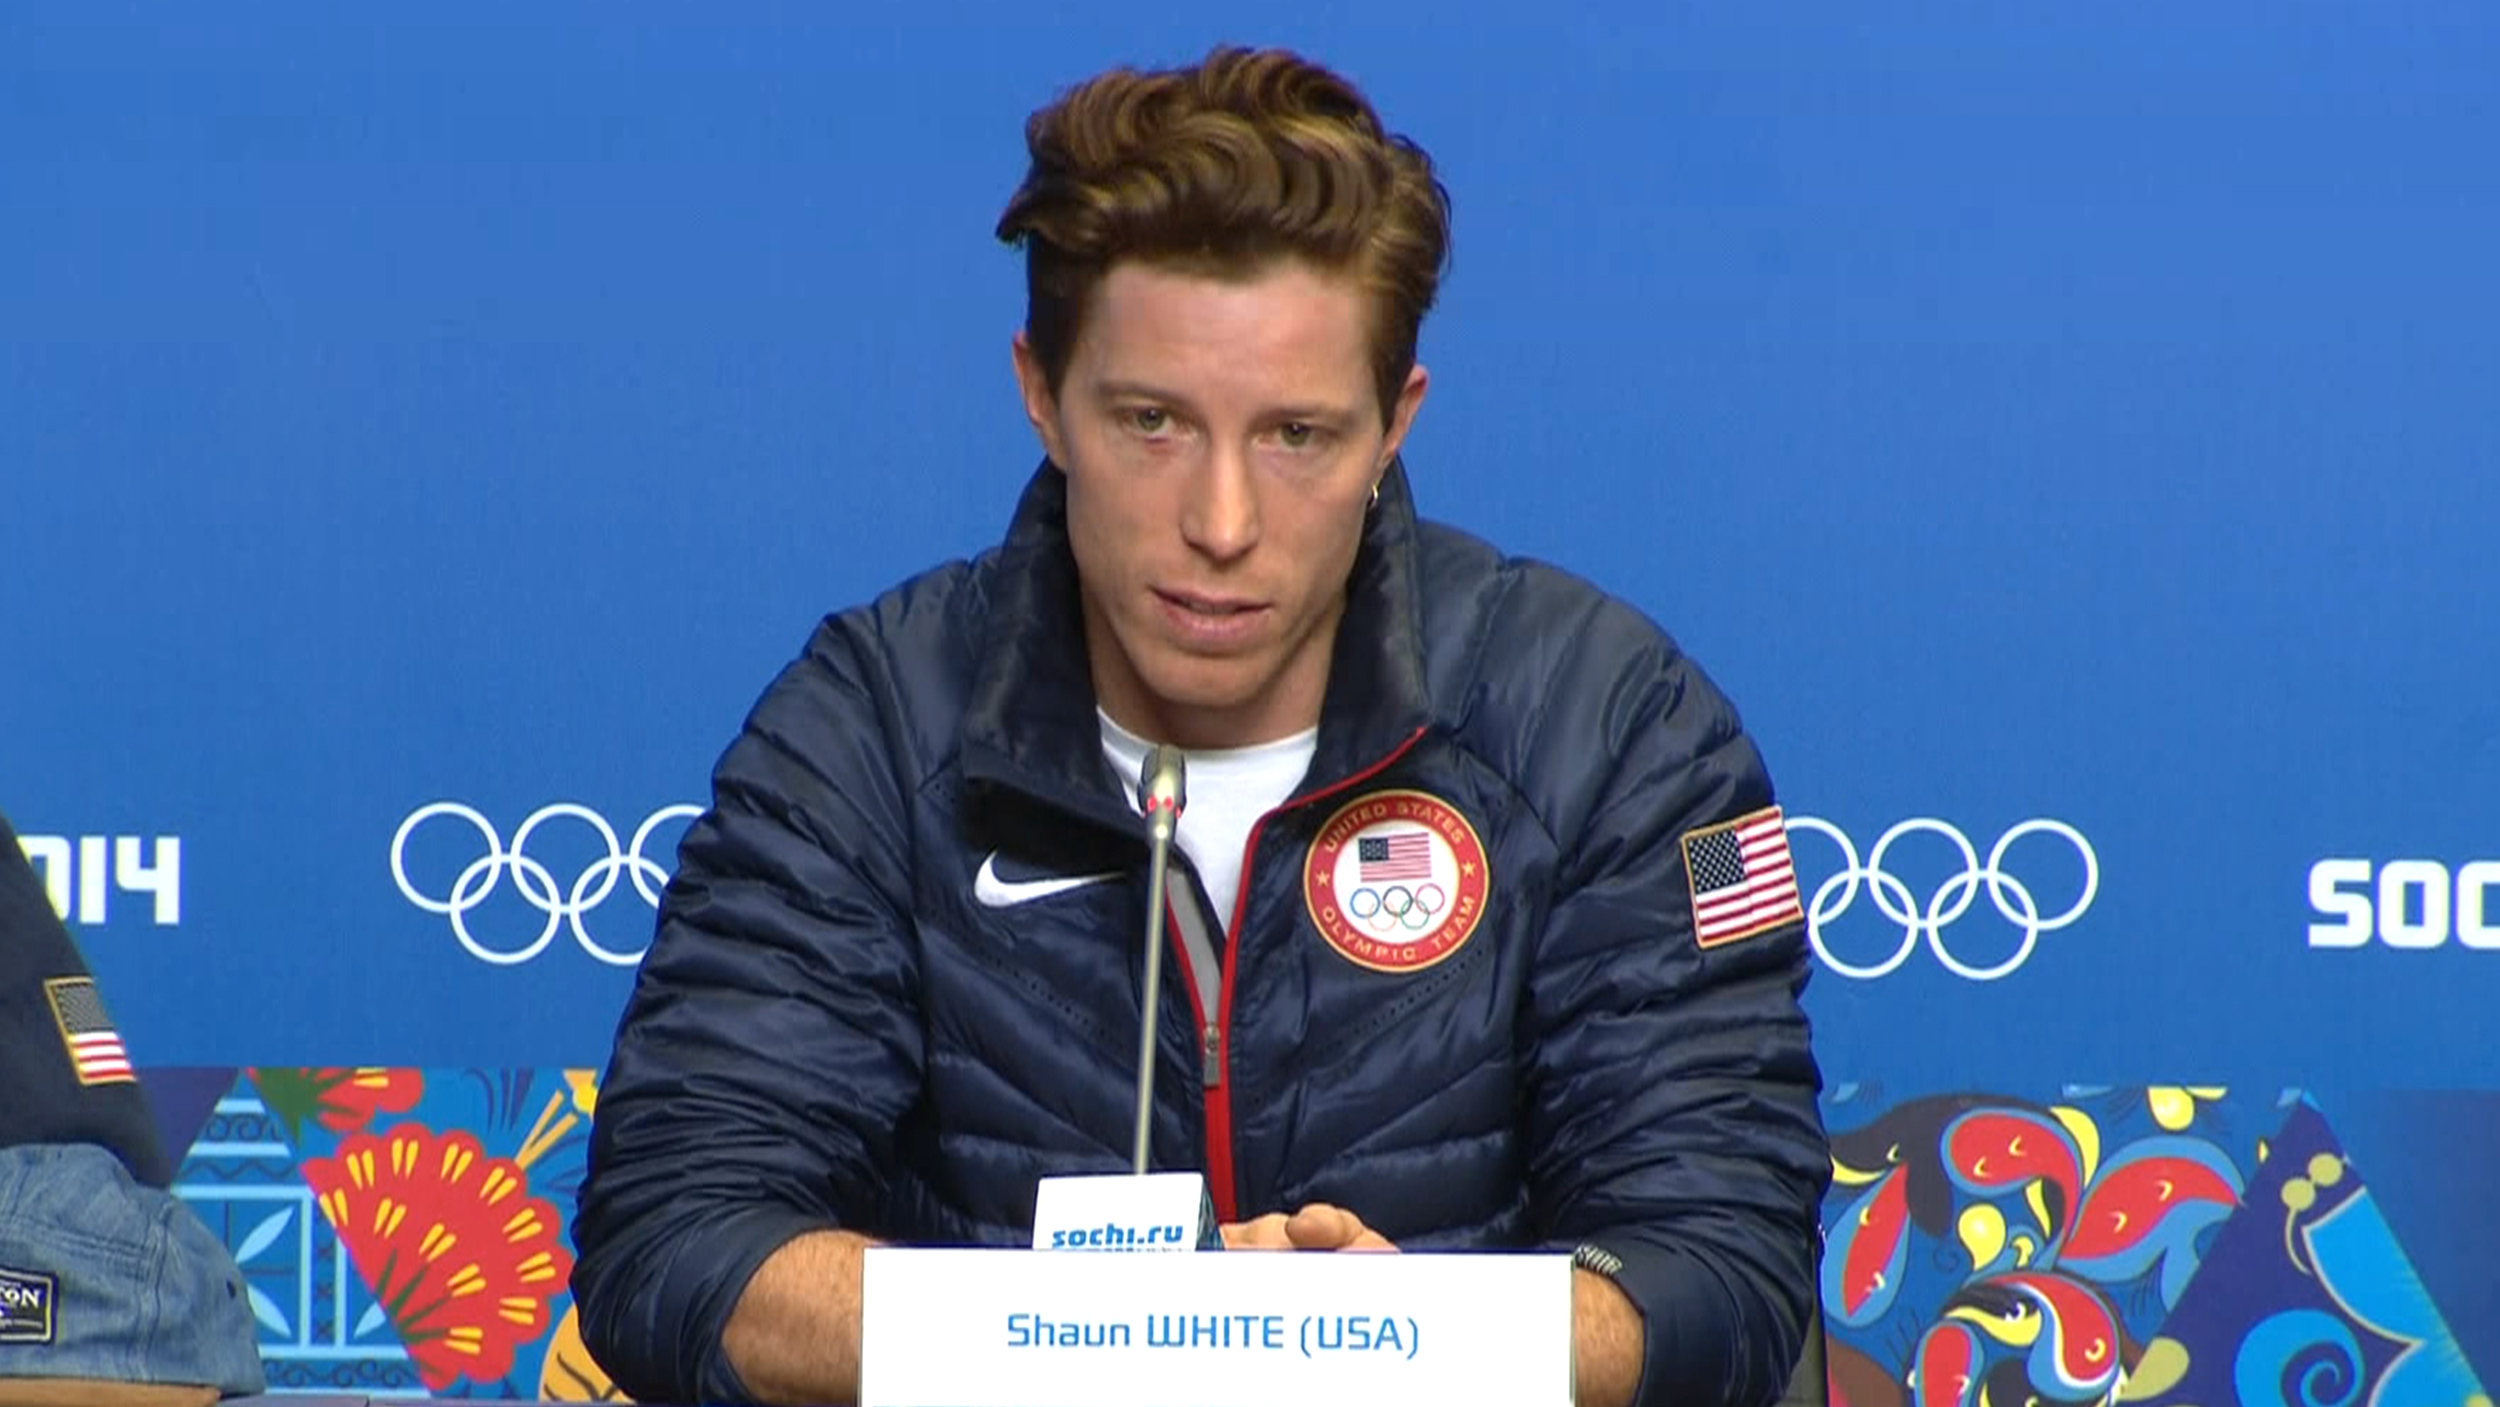 Shaun White Nude - X-Games Star in X-Rated